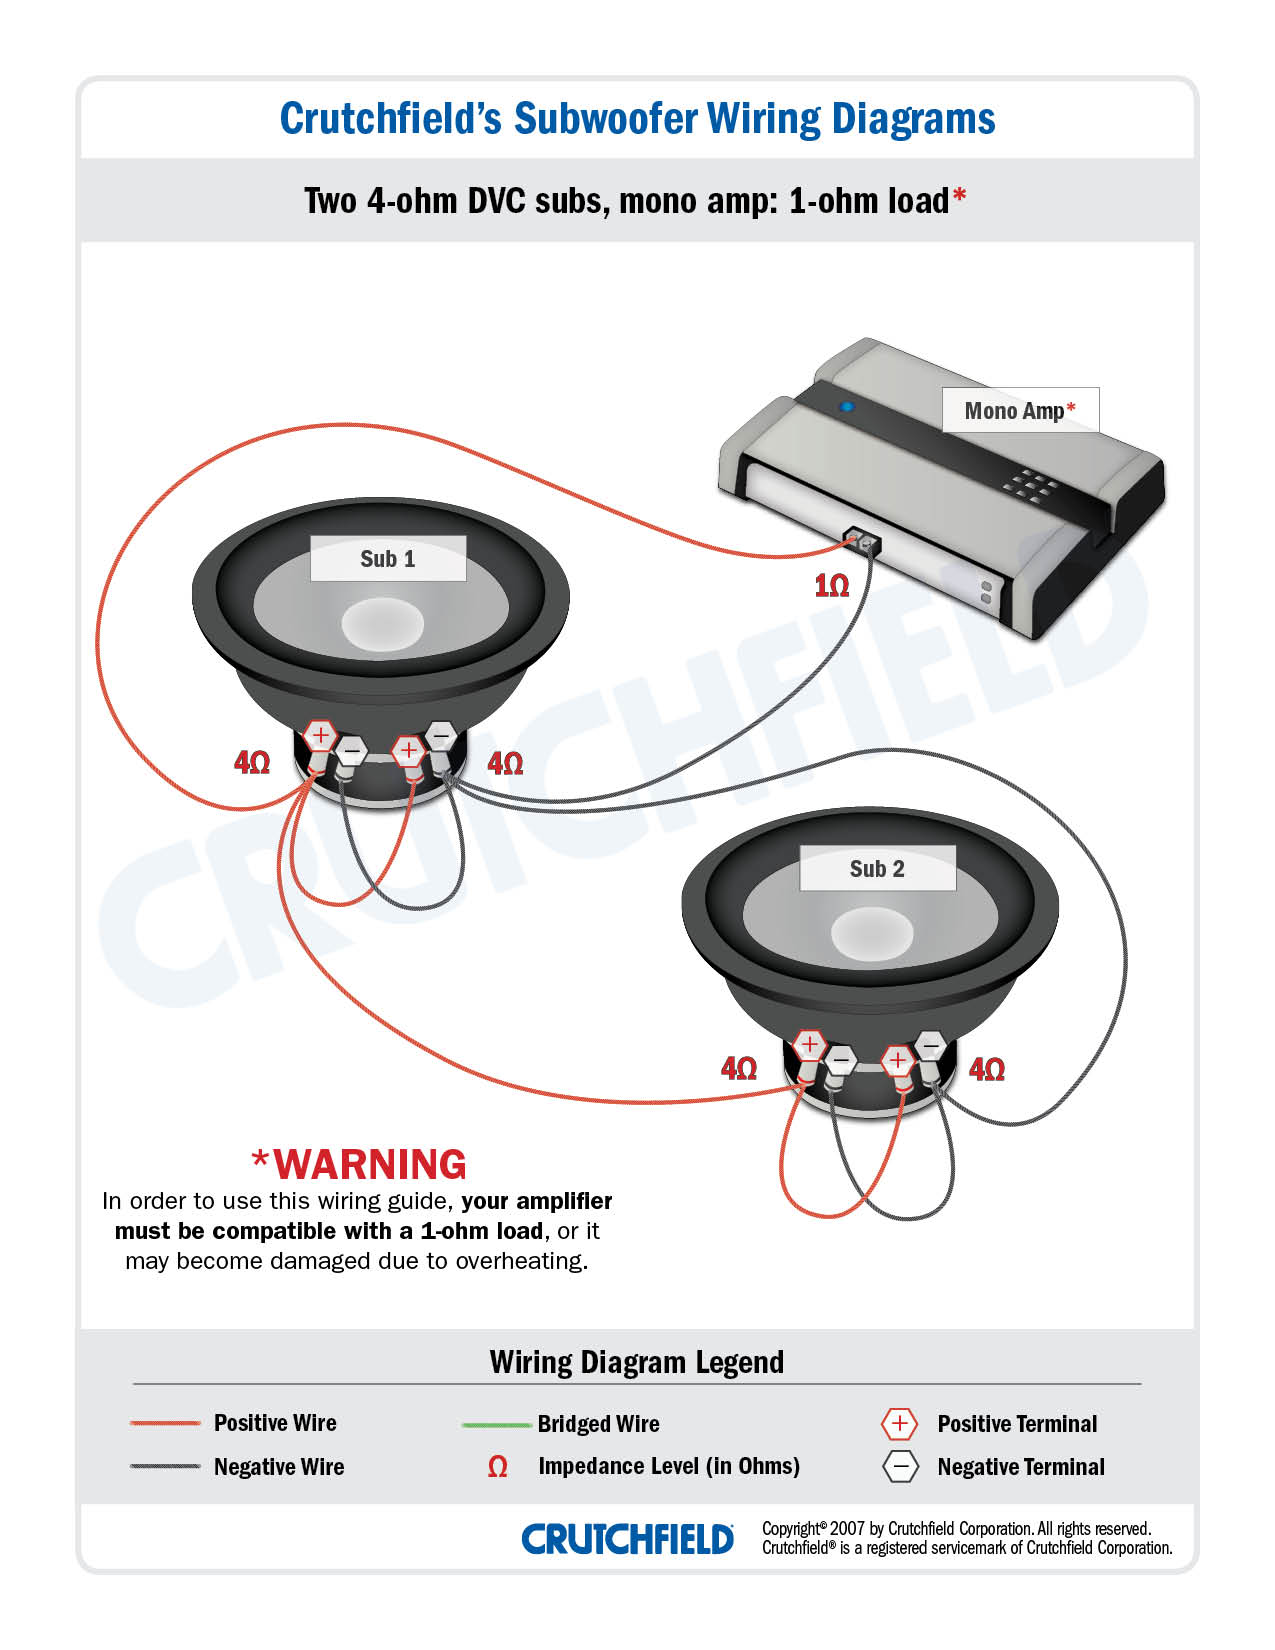 dvc subwoofer wiring diagram single 2 ohm dvc subwoofer wiring diagram for how should i wire these subs with this amp?